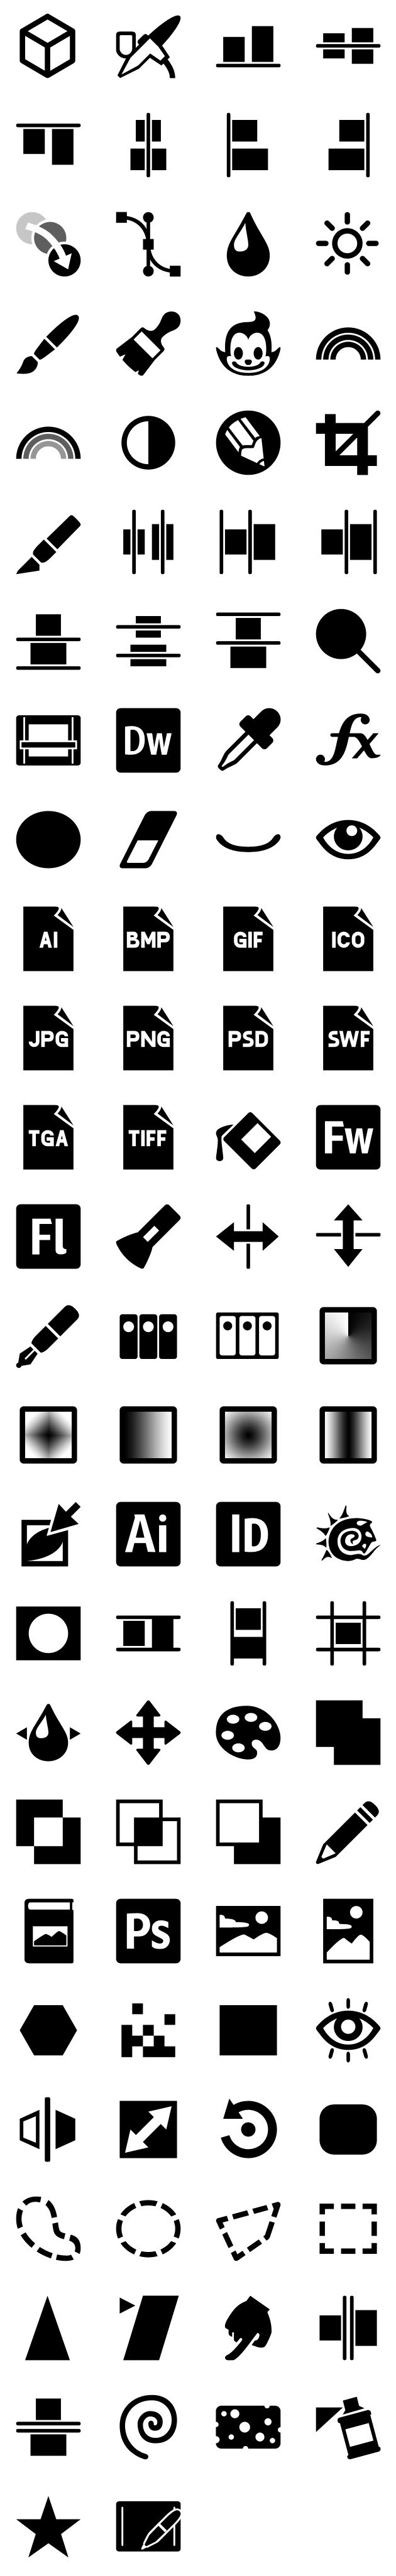 iphone icons graphics 114px